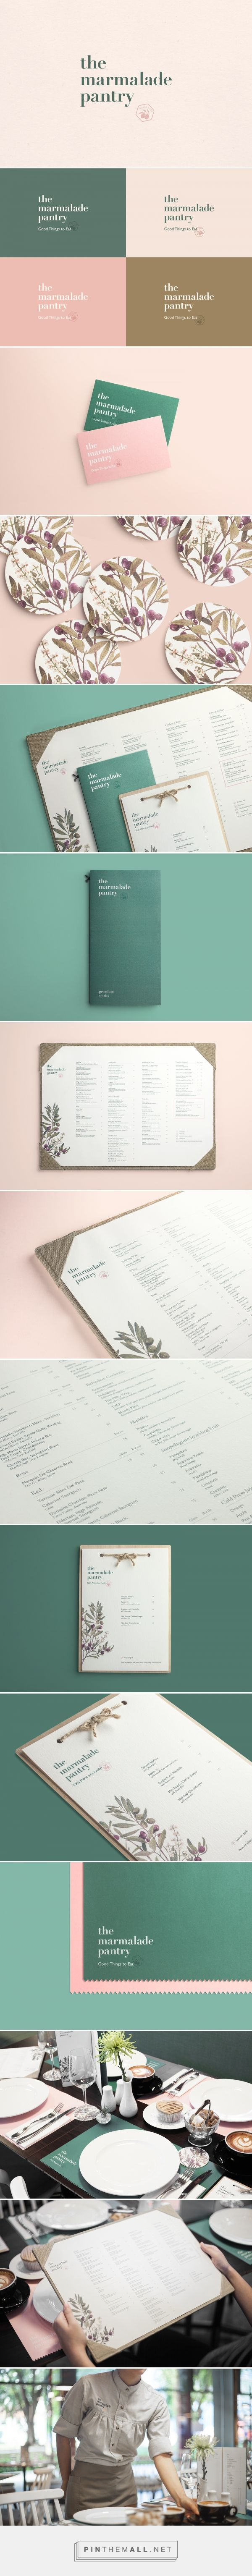 The Marmalade Pantry Restaurant Branding and Menu Design by Bravo | Fivestar Branding Agency – Design and Branding Agency & Curated Inspiration Gallery